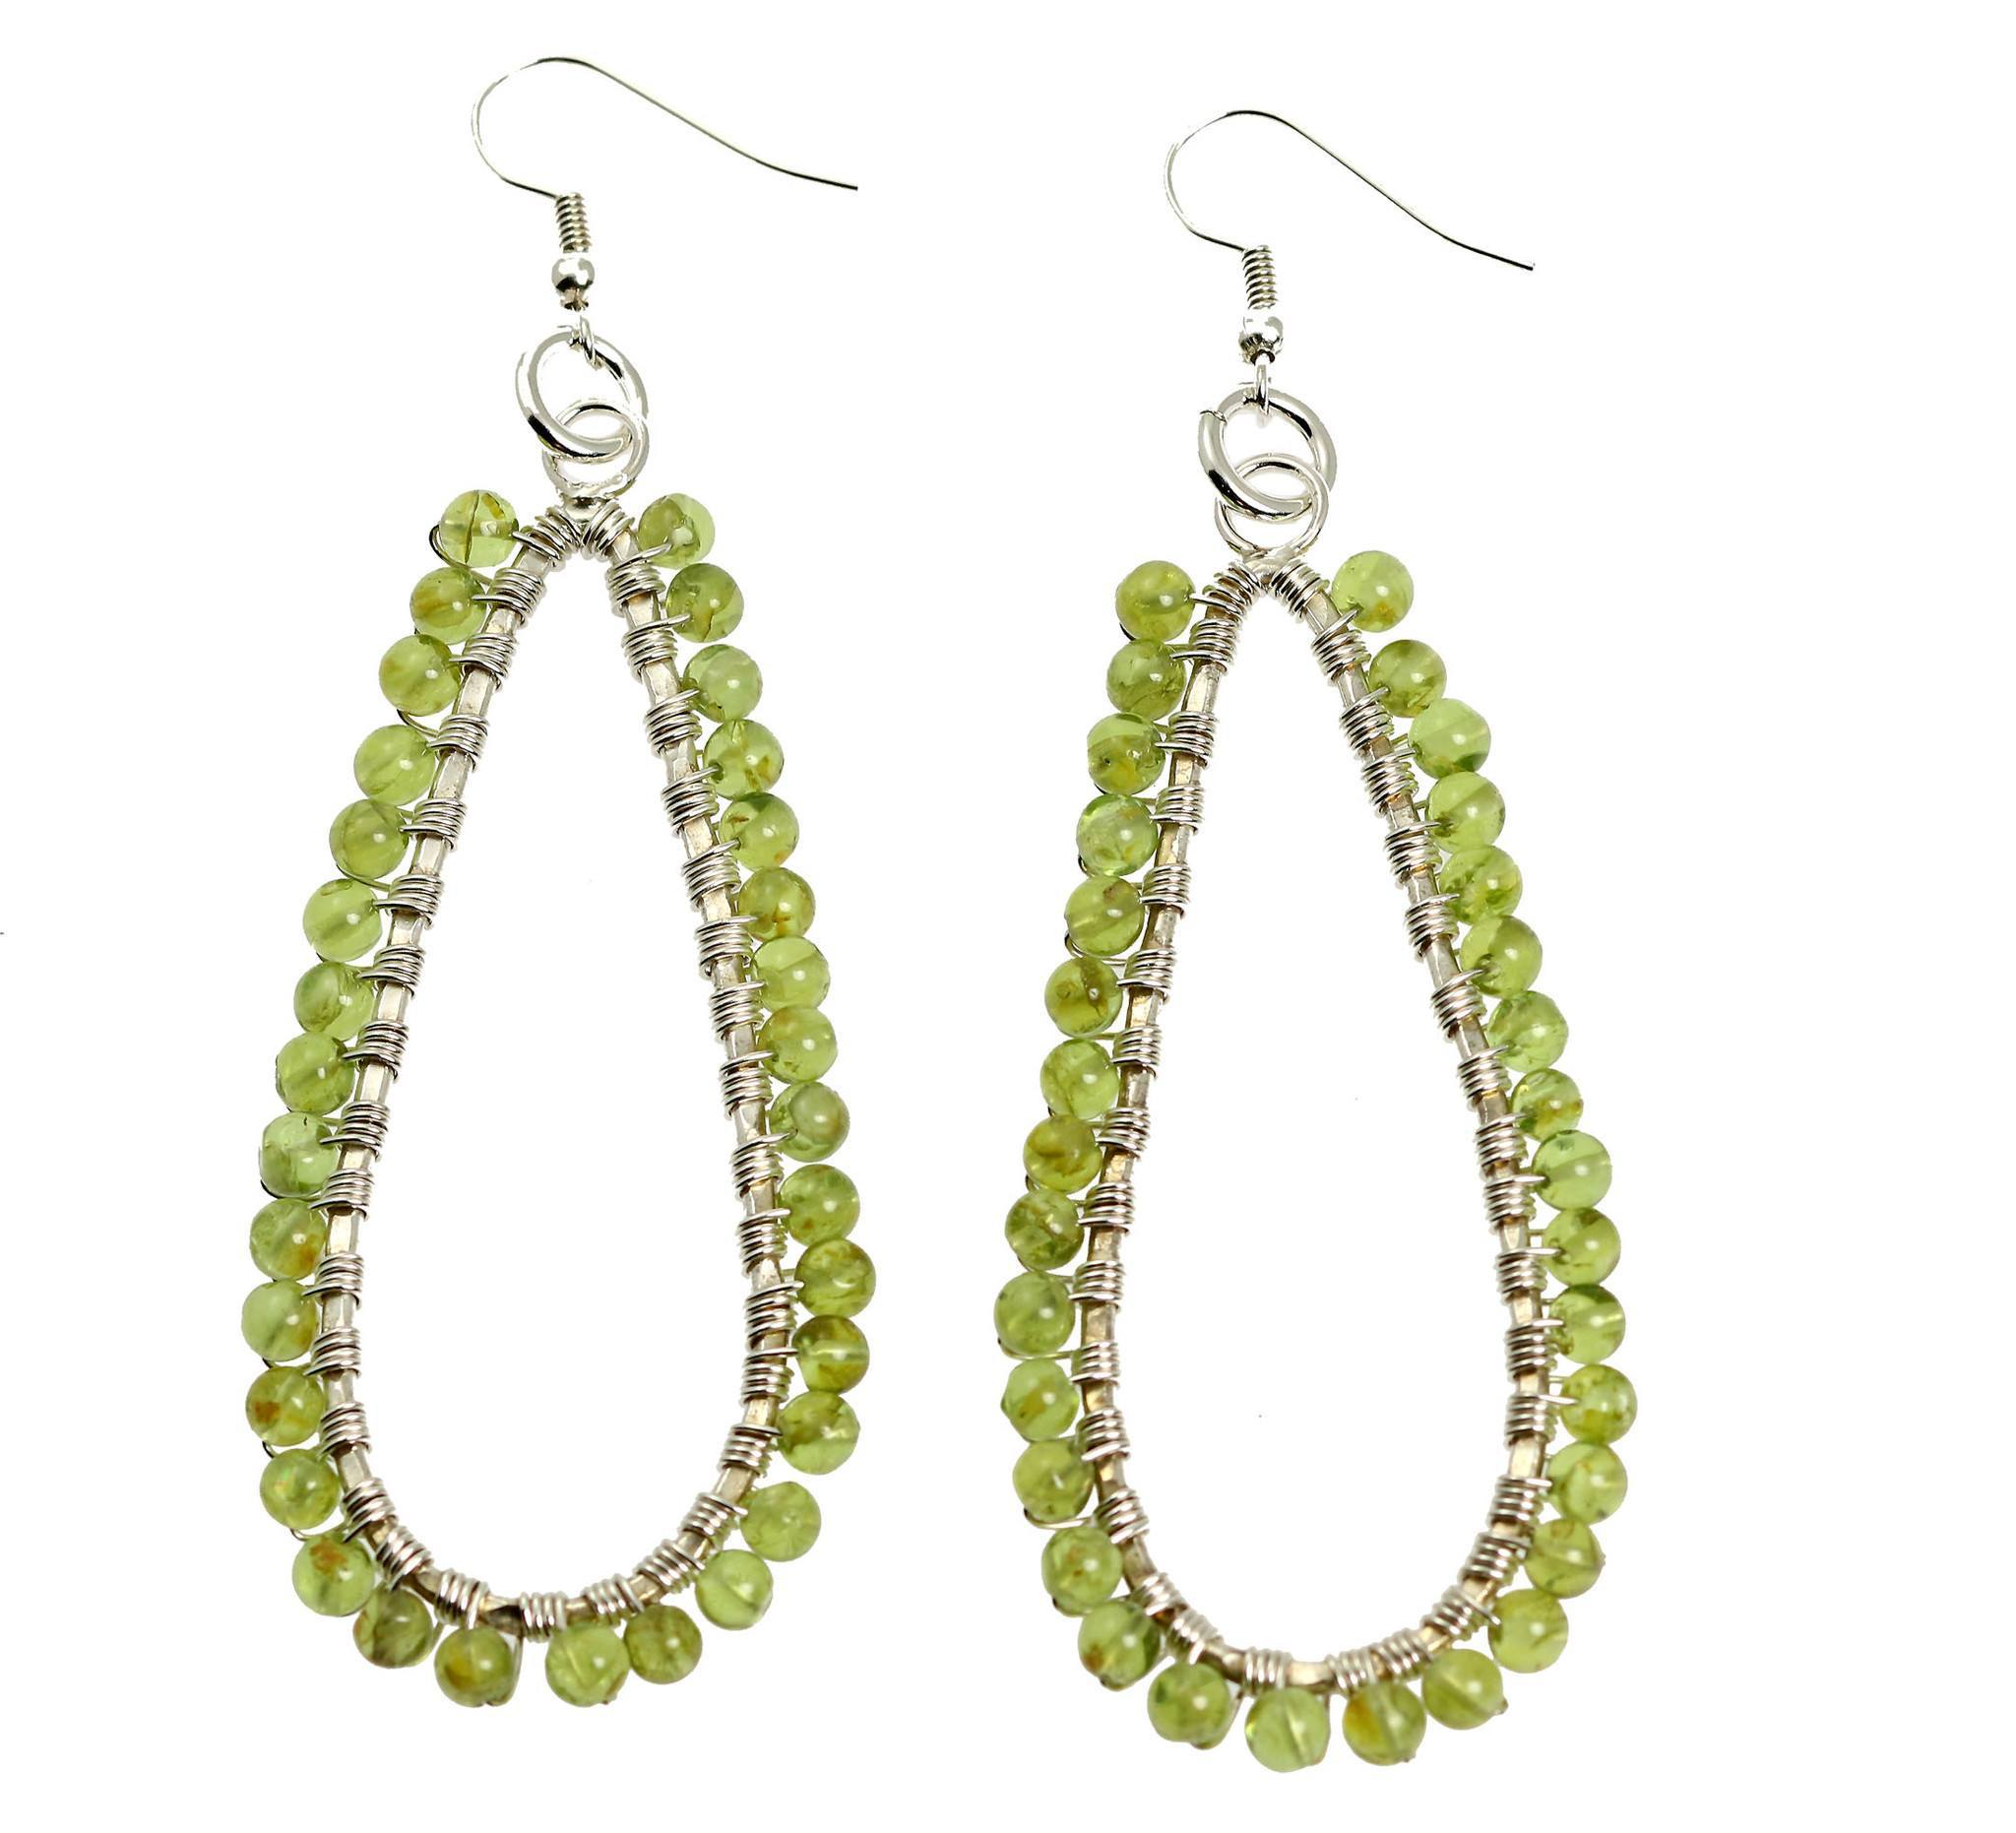 Hammered Fine Silver Wire Wrapped Tear Drop Peridot Earrings - John ...